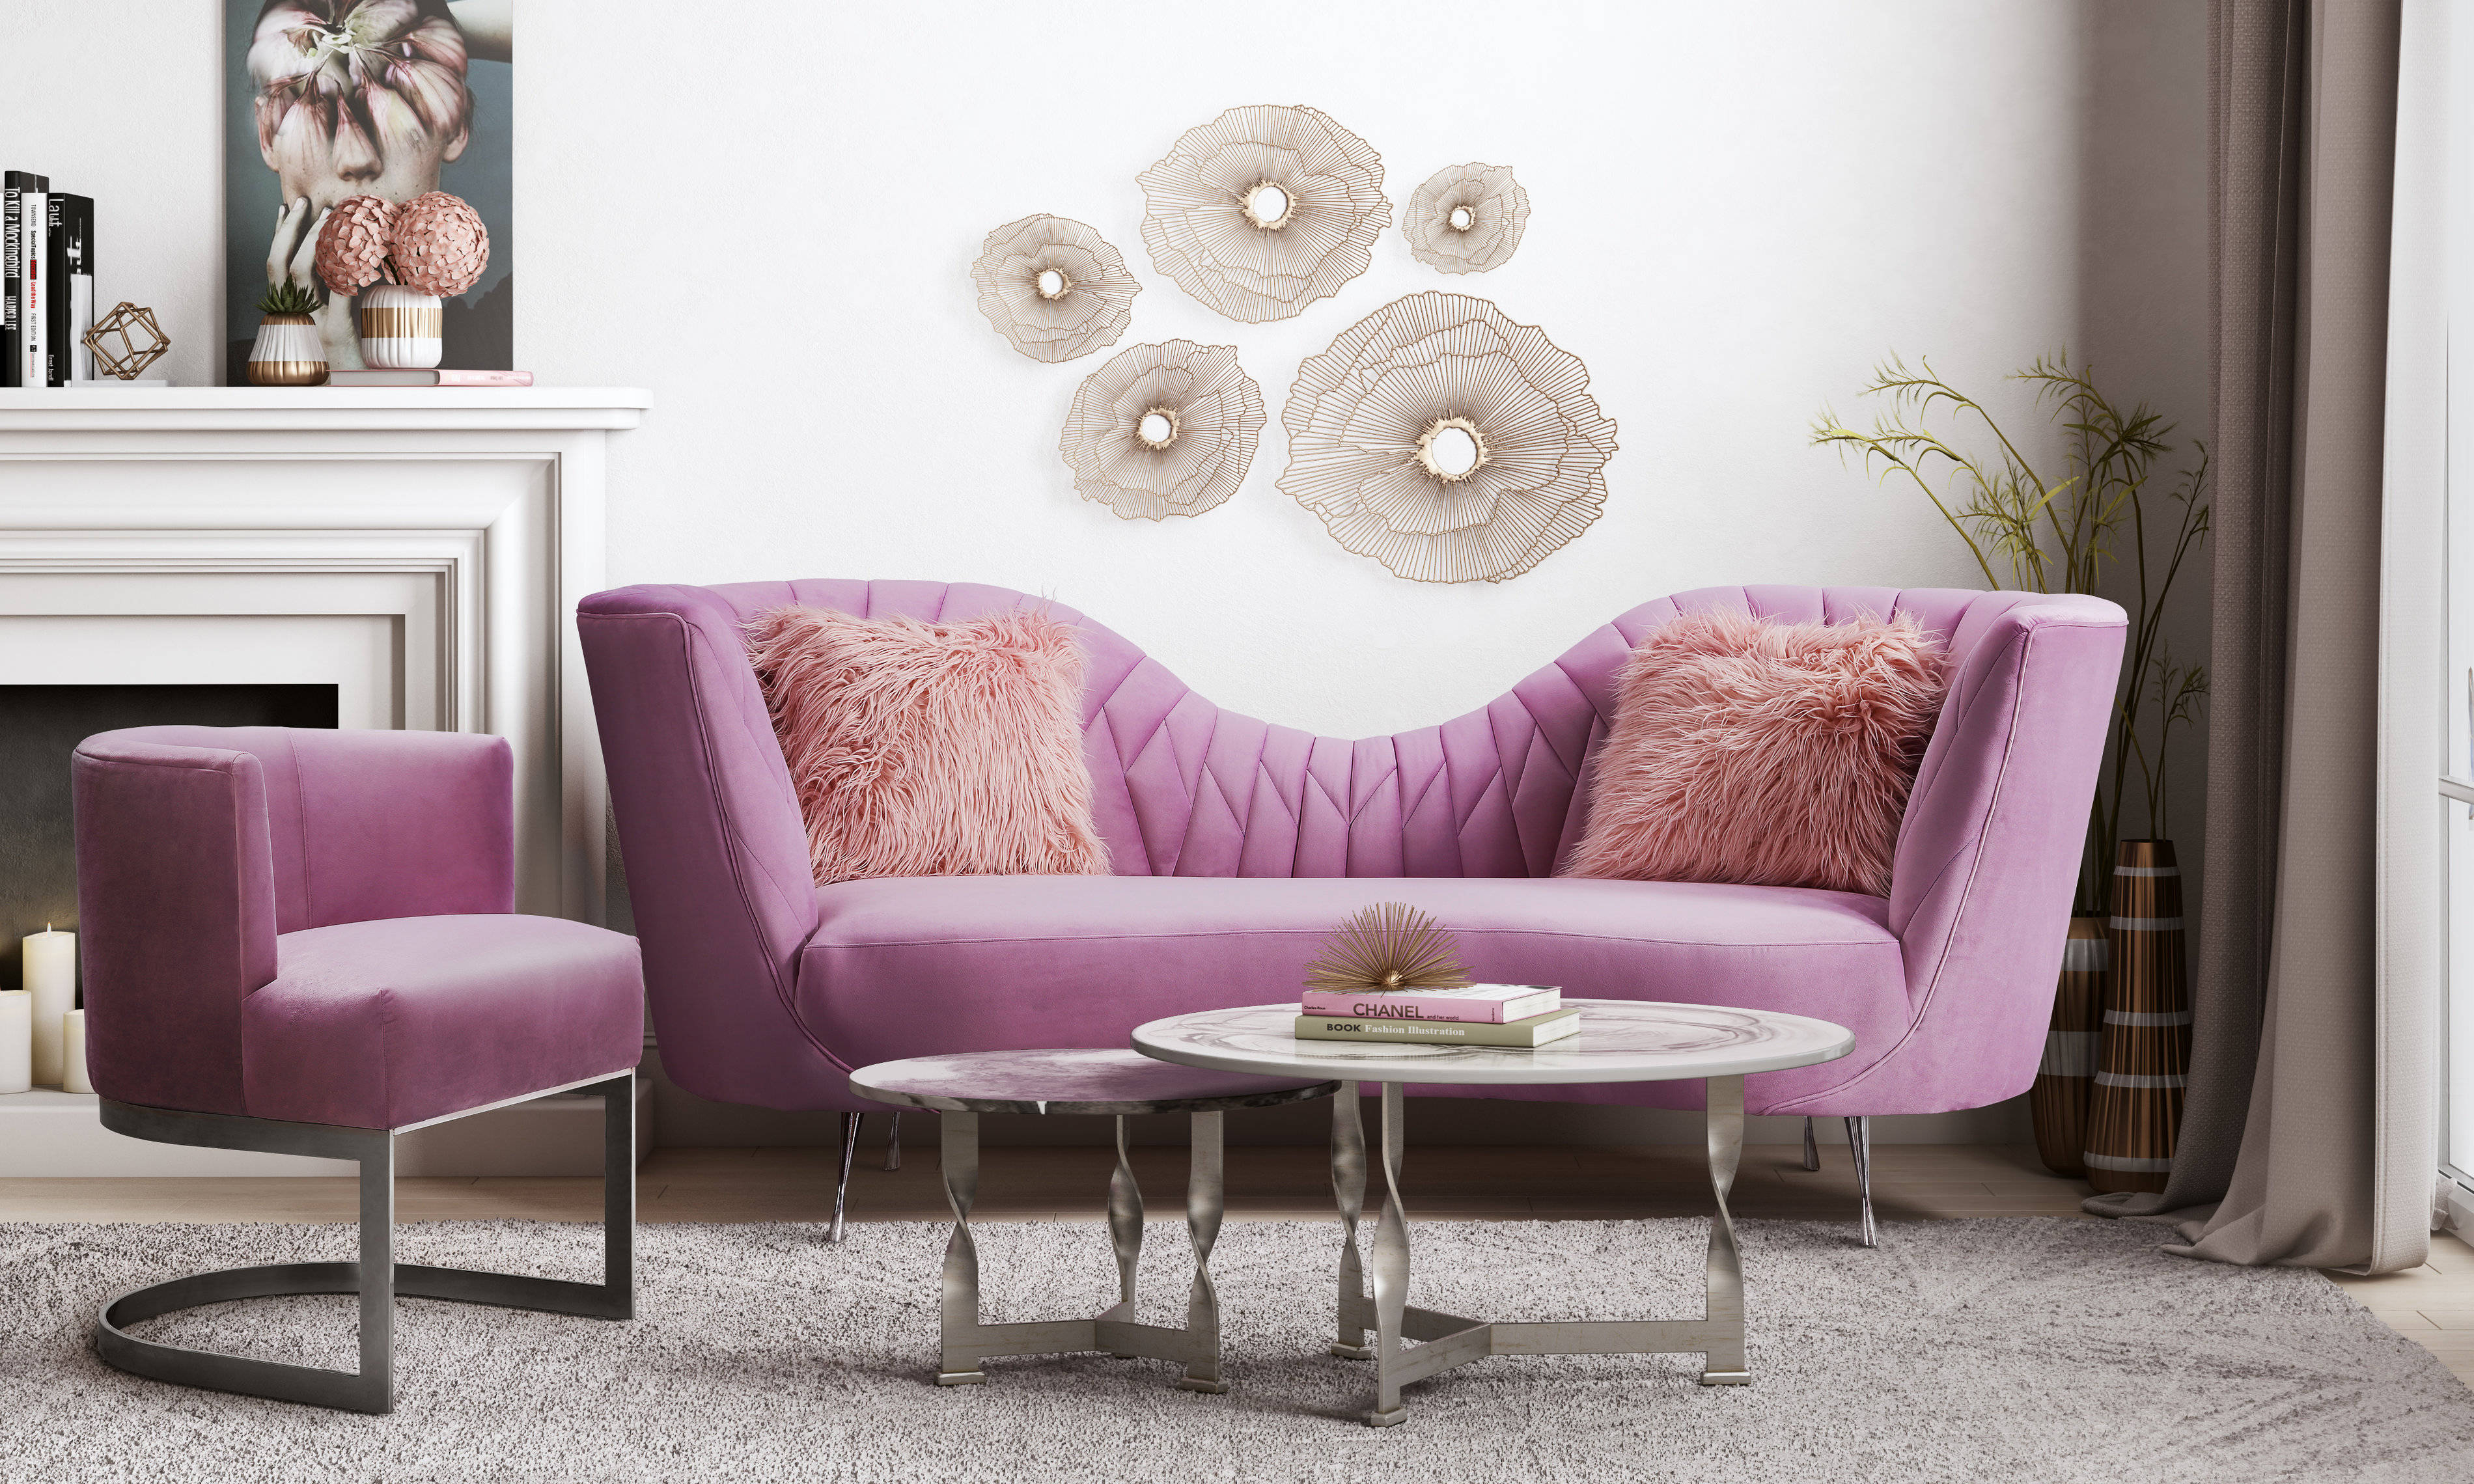 Tov Furniture Eva Blush Velvet 2pc Living Room Set pertaining to 15 Some of the Coolest Initiatives of How to Improve Whole Living Room Sets